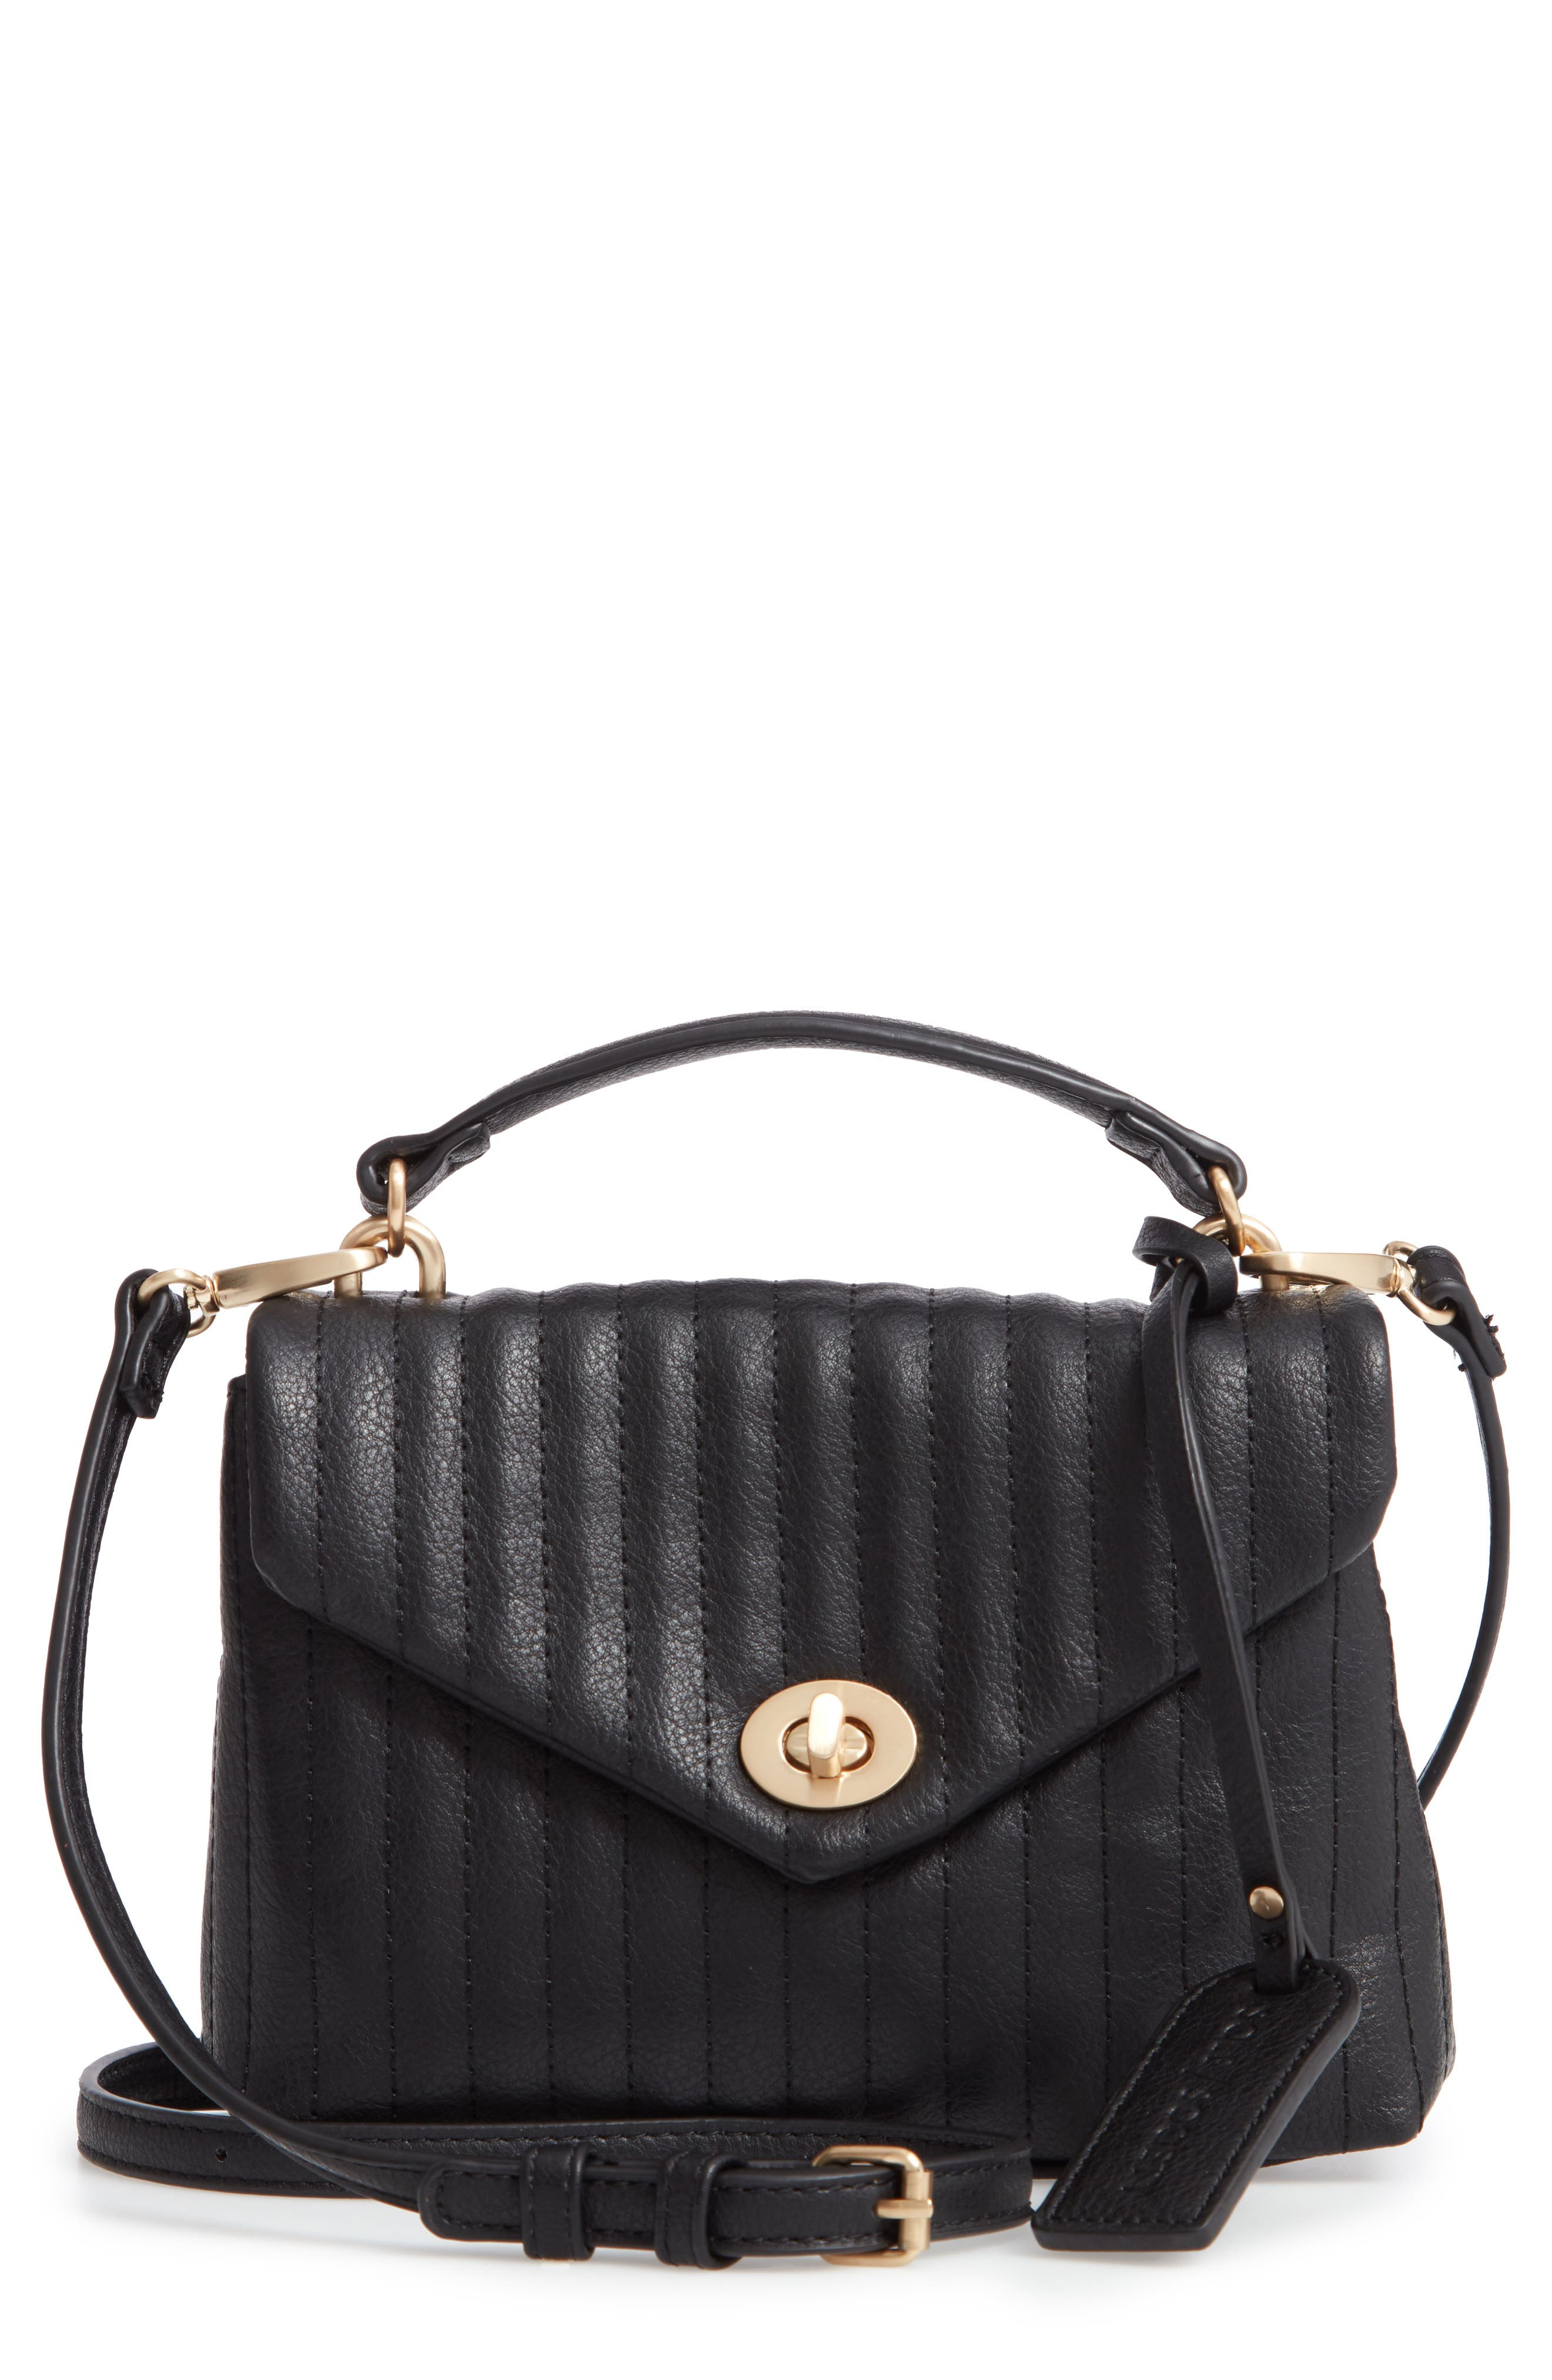 SOLE SOCIETY Urche Faux Leather Crossbody Bag, Main, color, BLACK